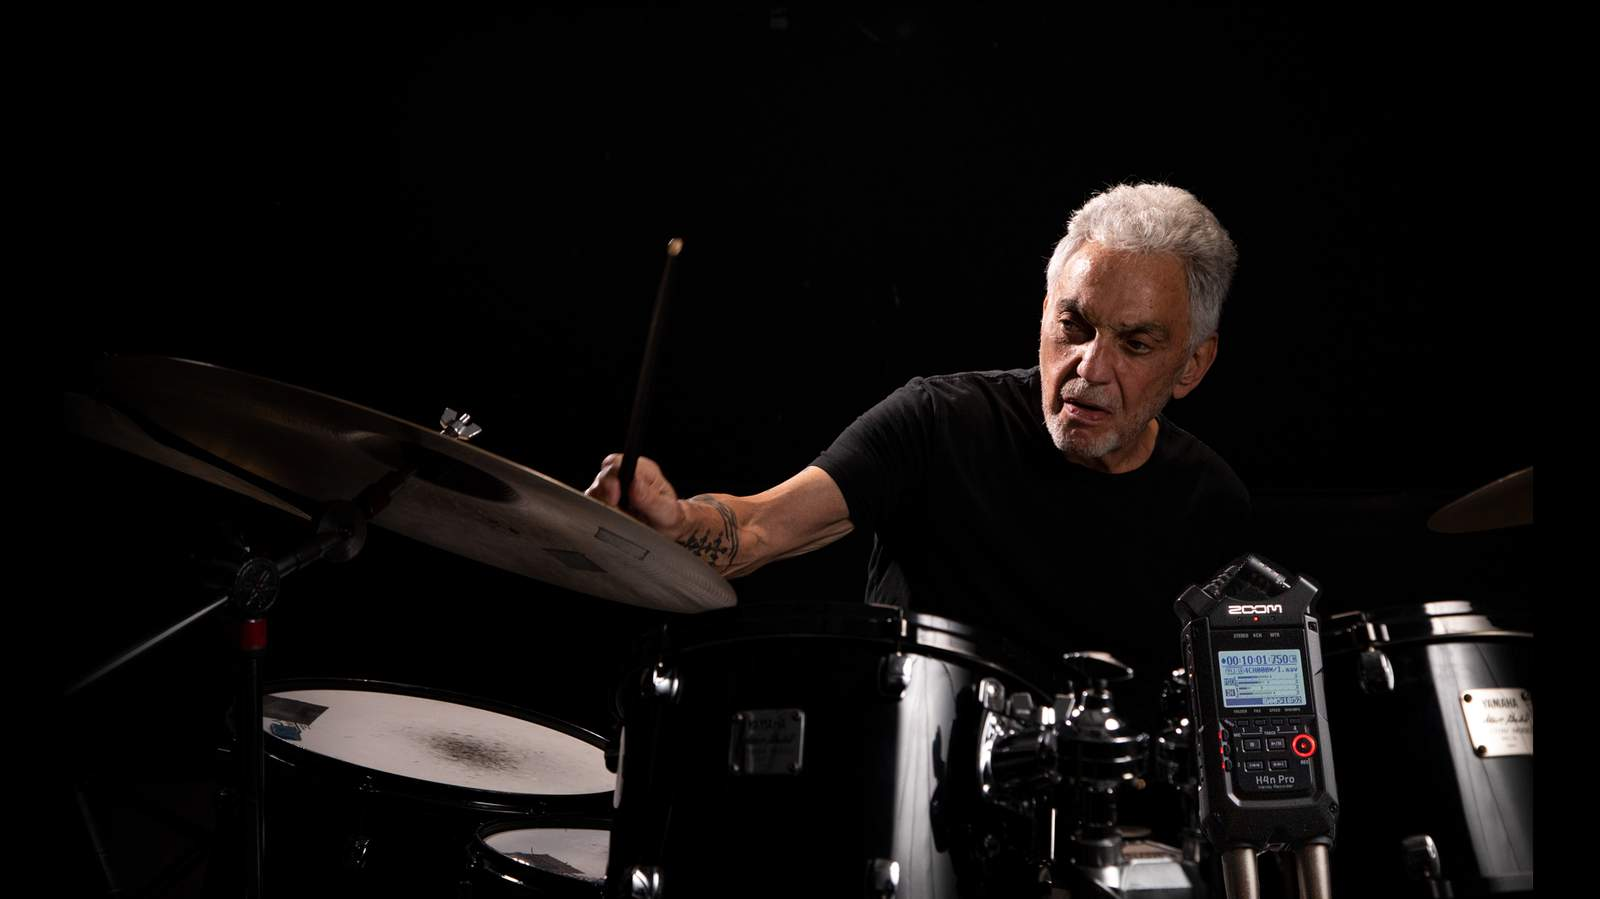 H4n Pro records Steve Gadd playing drums